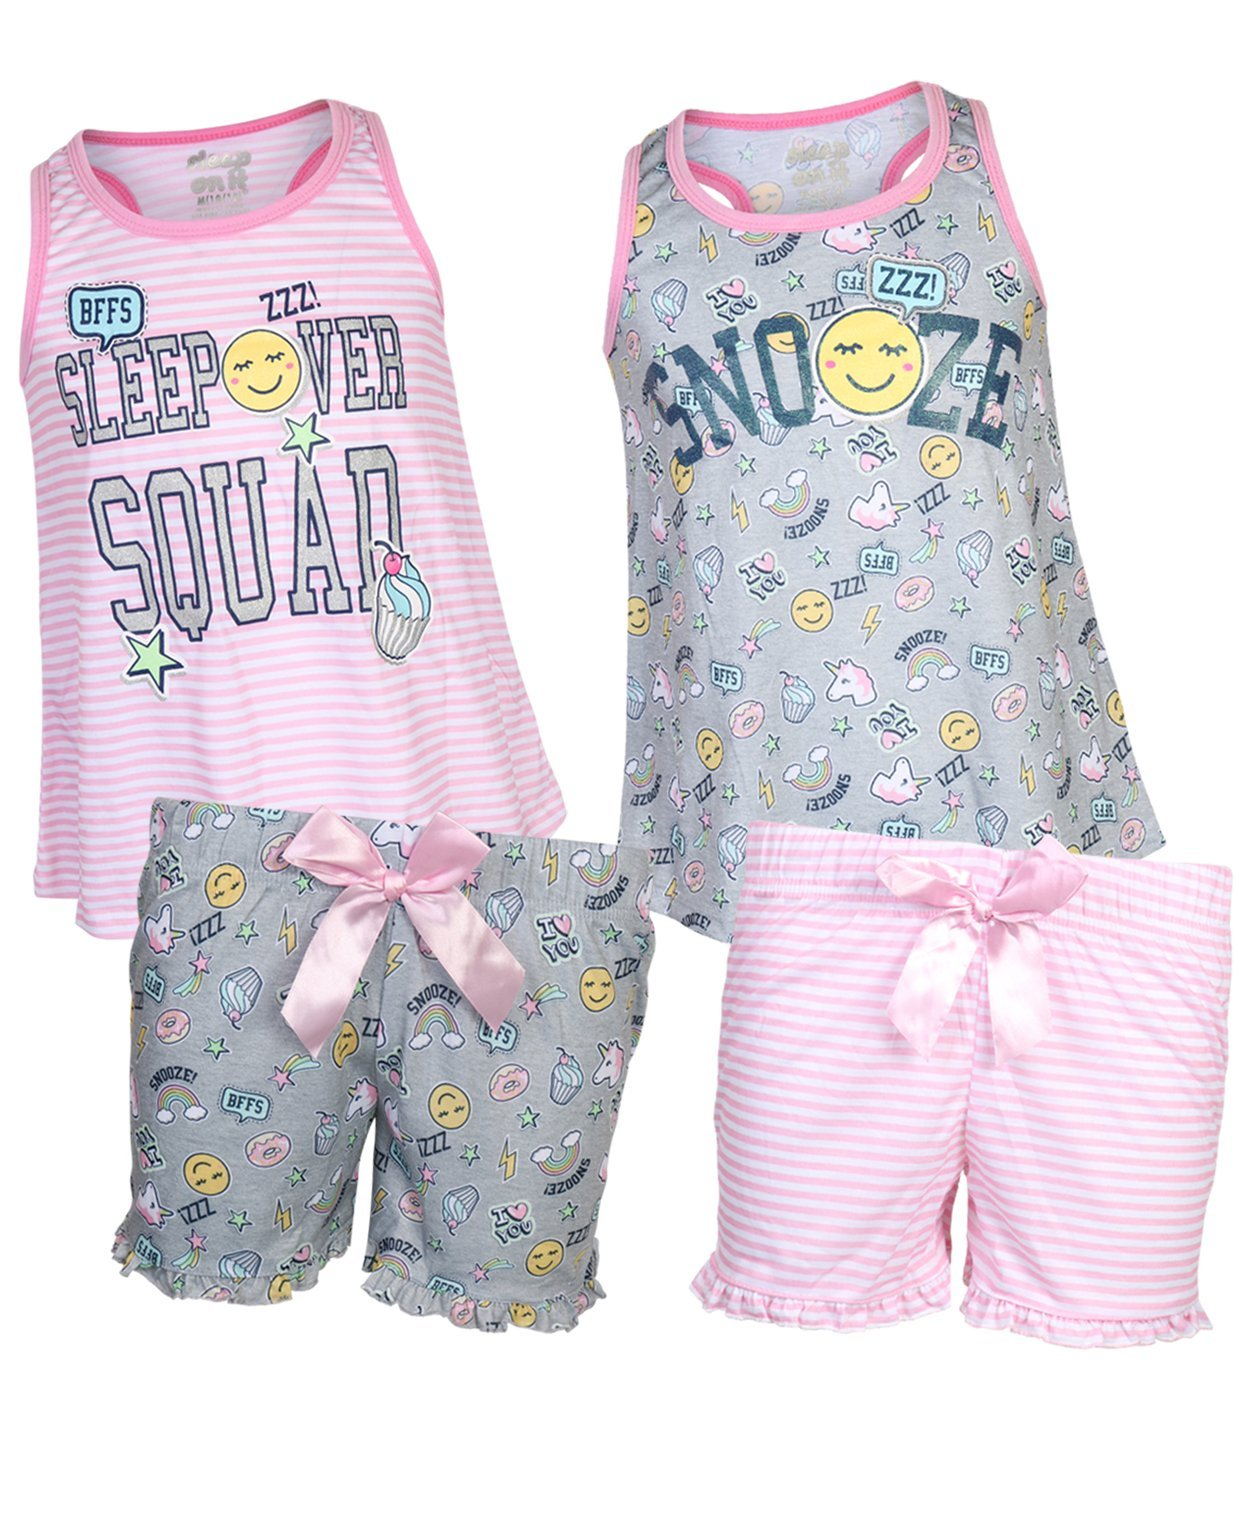 Sleep On It Girls 4-Piece Summer Pajama Short Set (2 Full Sets) Snooze, Size 10/12'